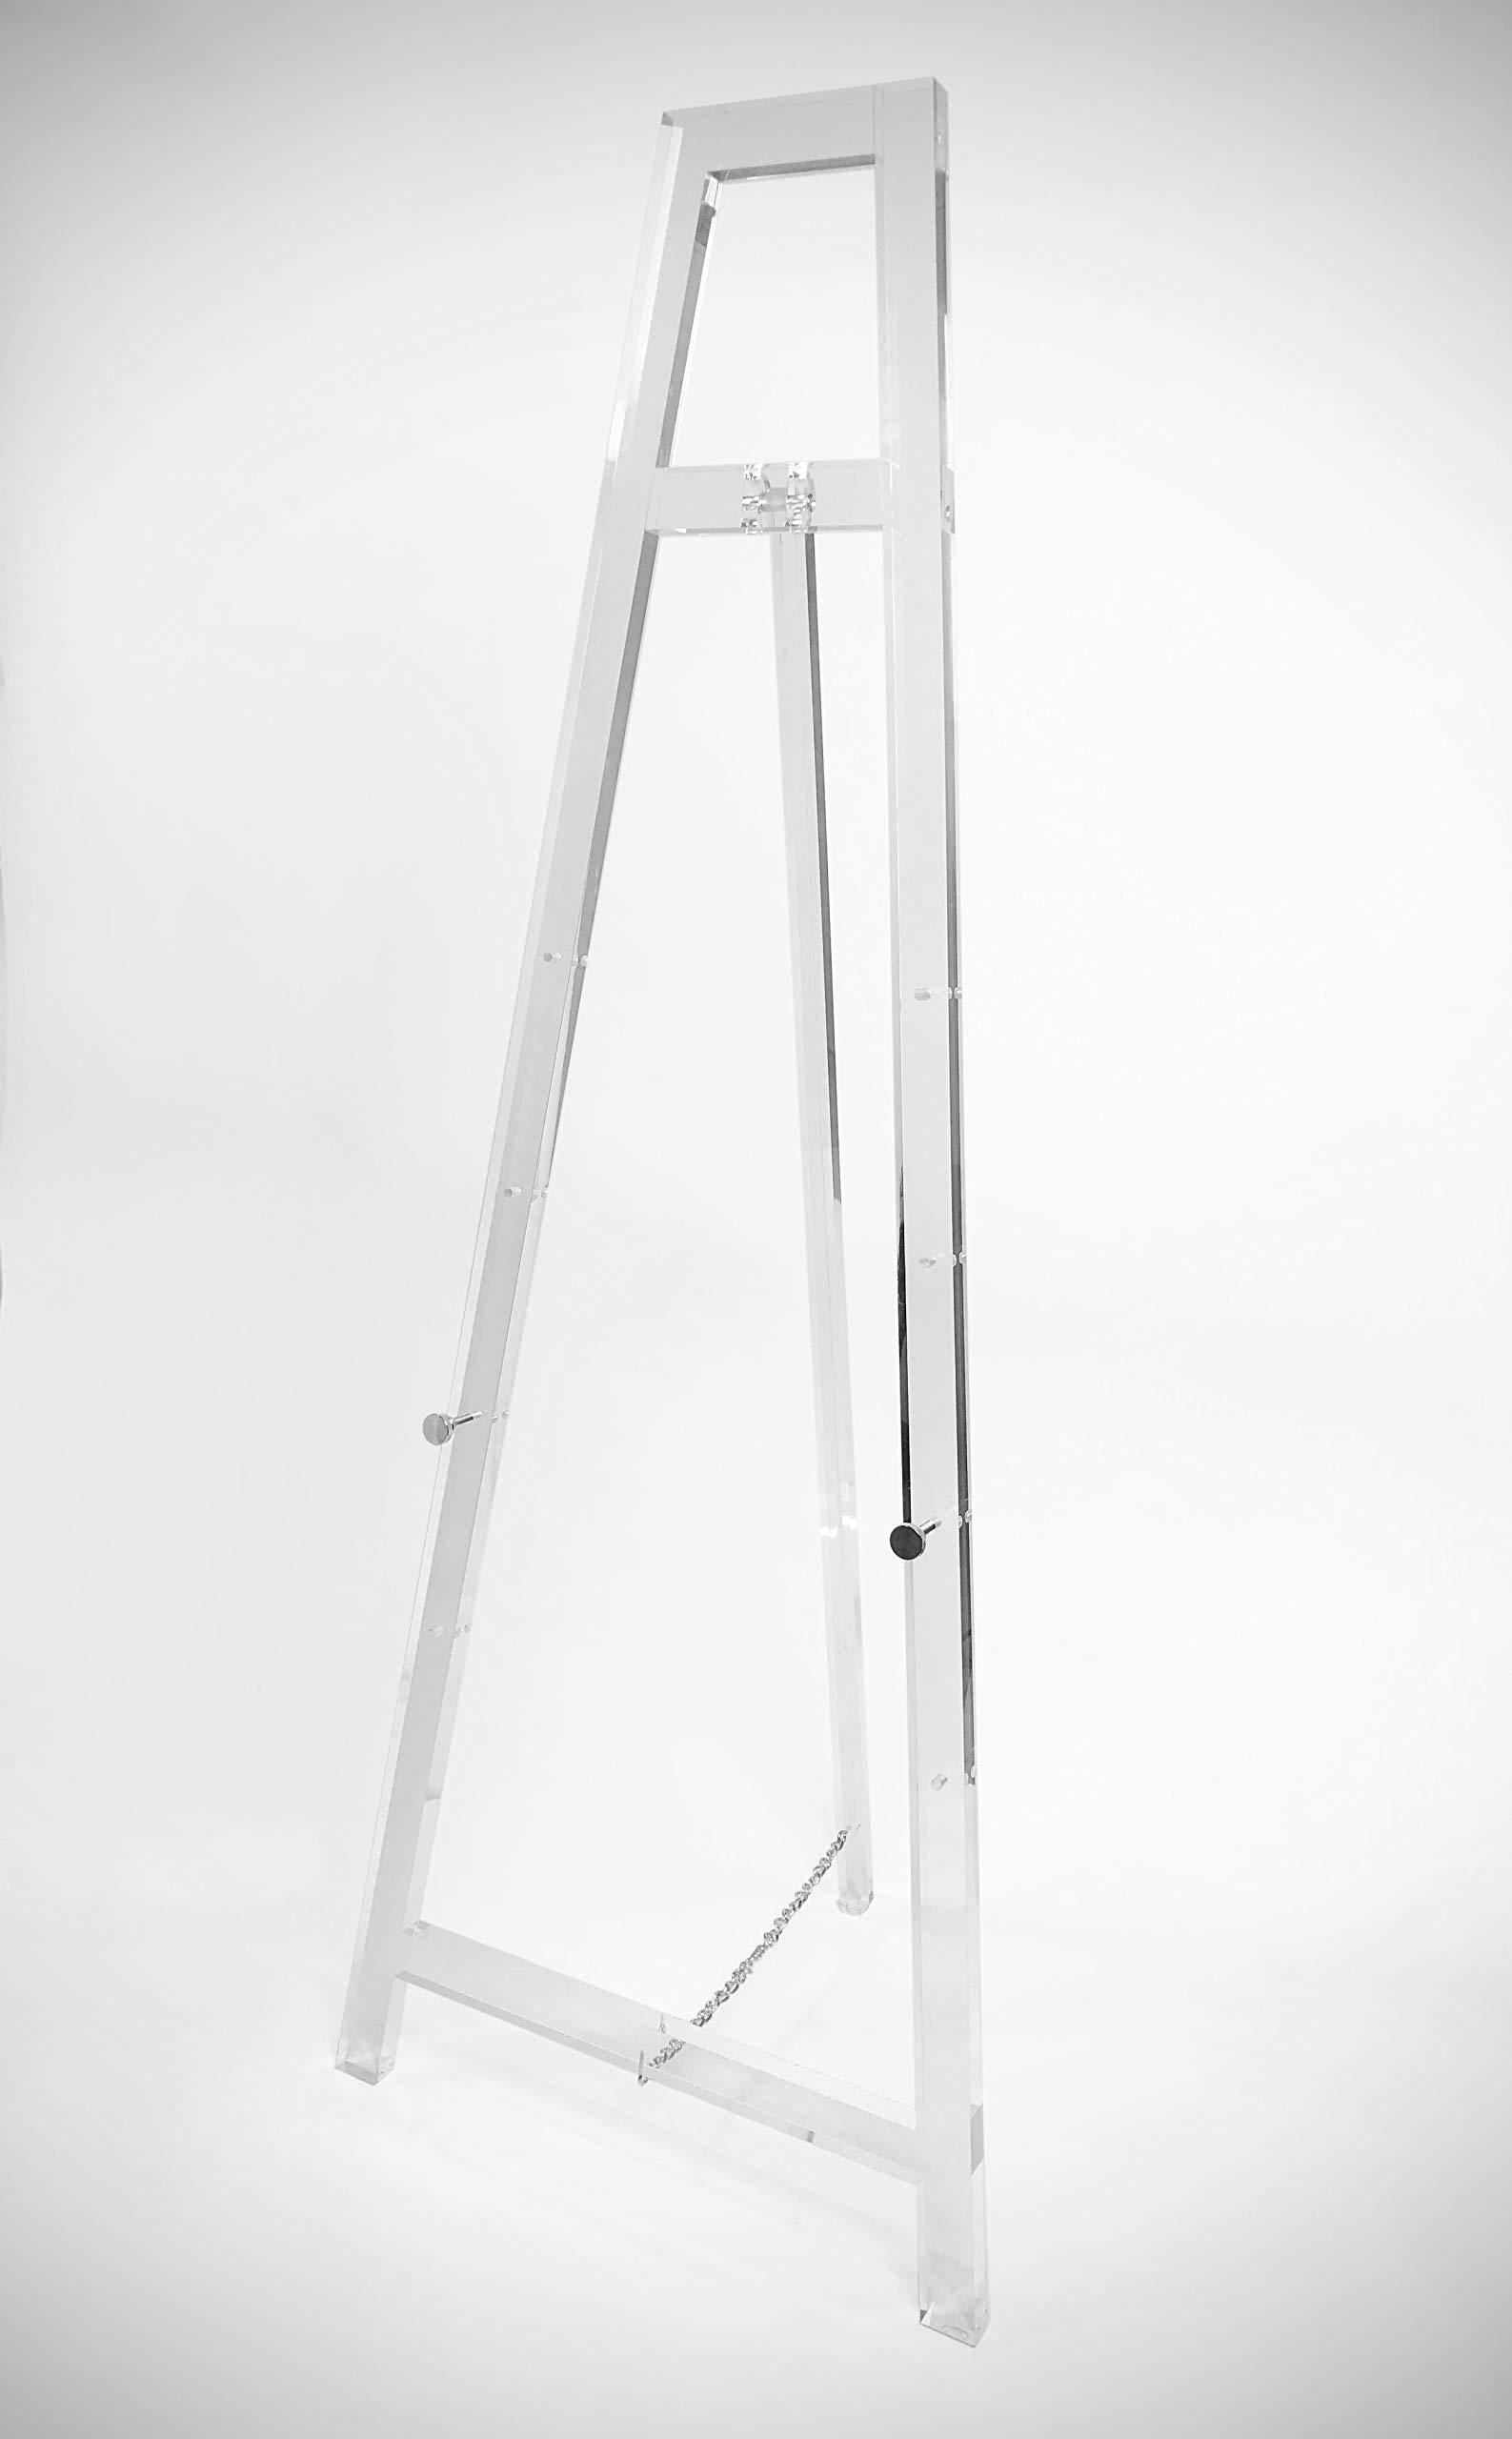 Designstyles Decorative Acrylic Easel Stand - Adjustable Floor Display for Art Pieces, Signs, Mirrors and Chalk/Dry Erase Boards - 58'' Tall, Solid Clear for Classy Exhibits and Paintings